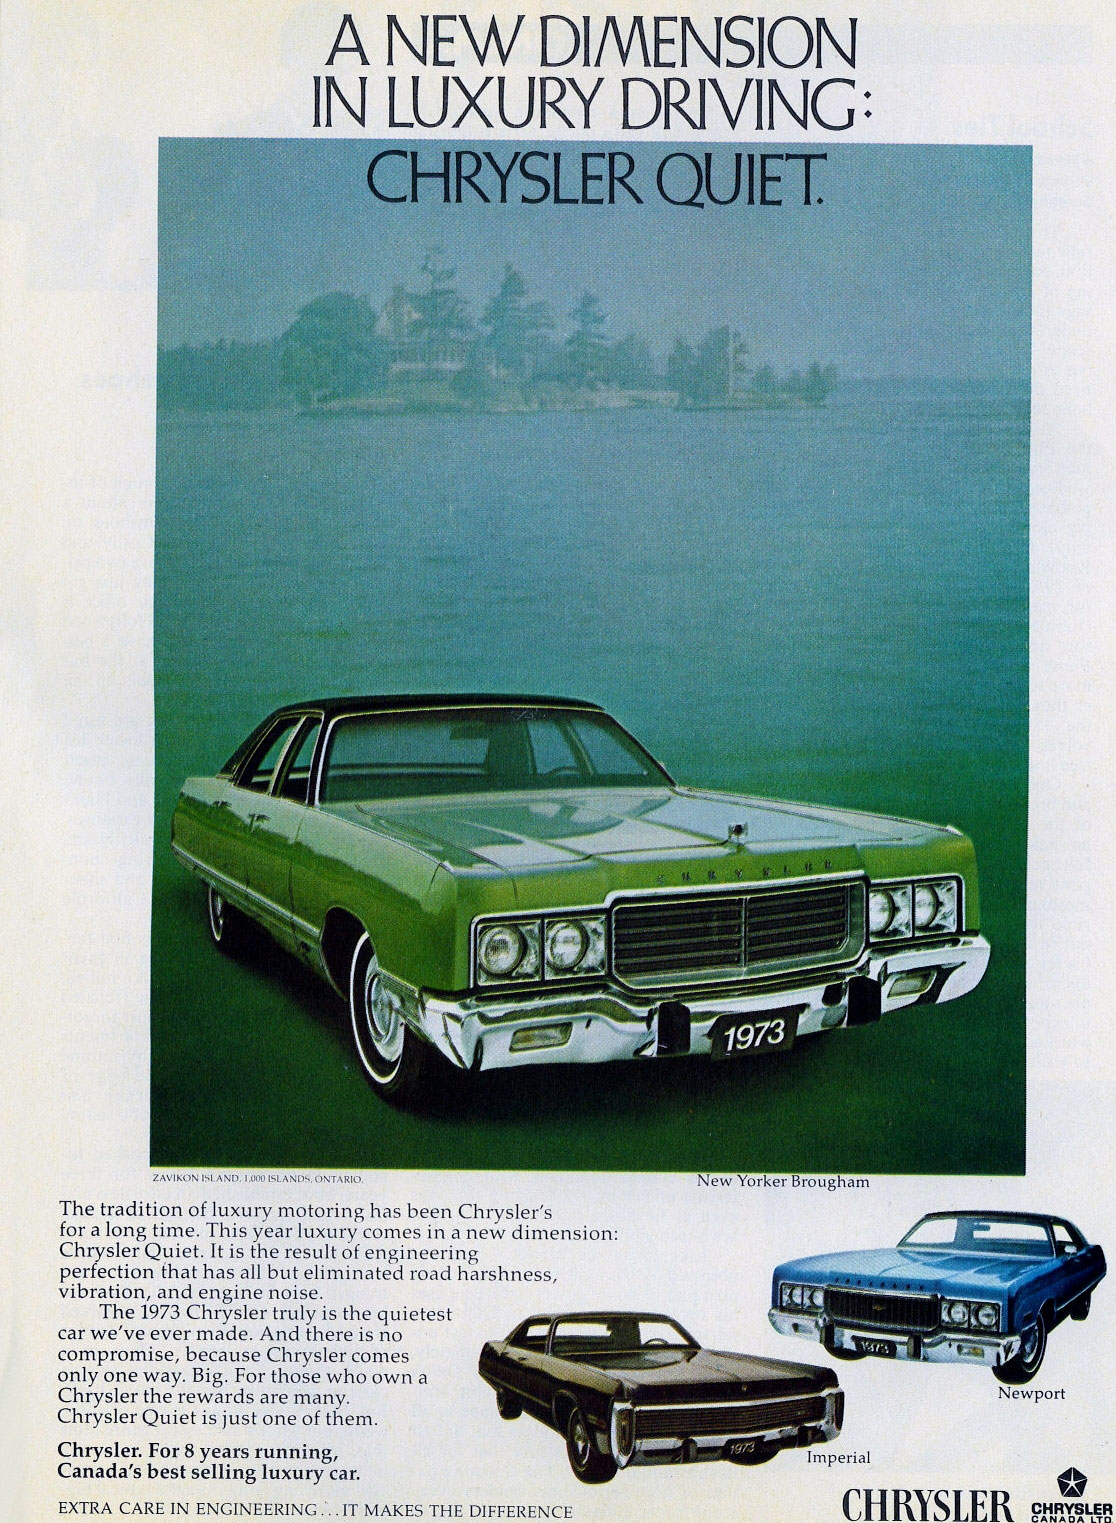 1973 Chrysler New Yorker Brougham